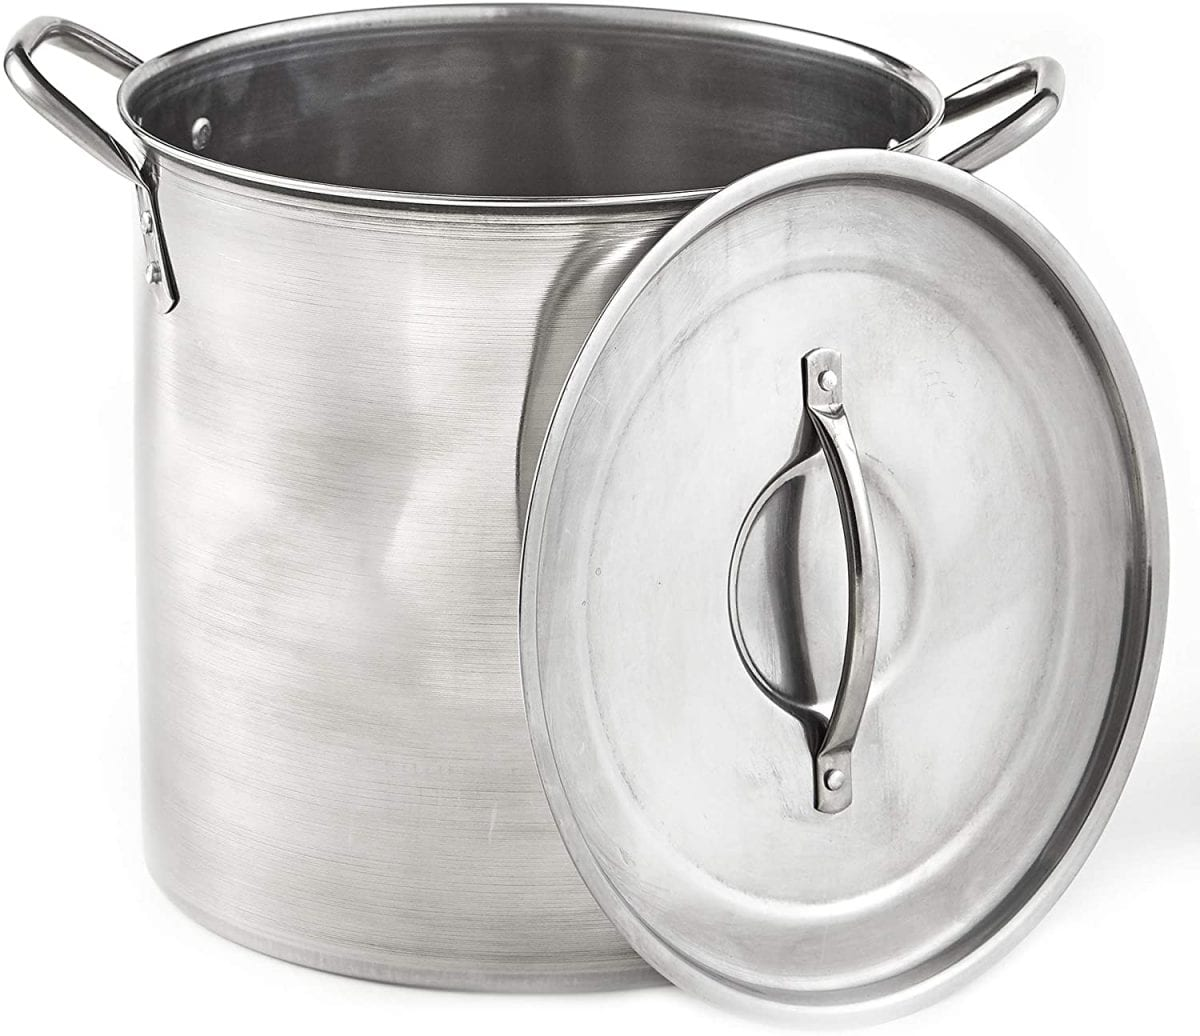 Imusa stainless steel silver stock pot